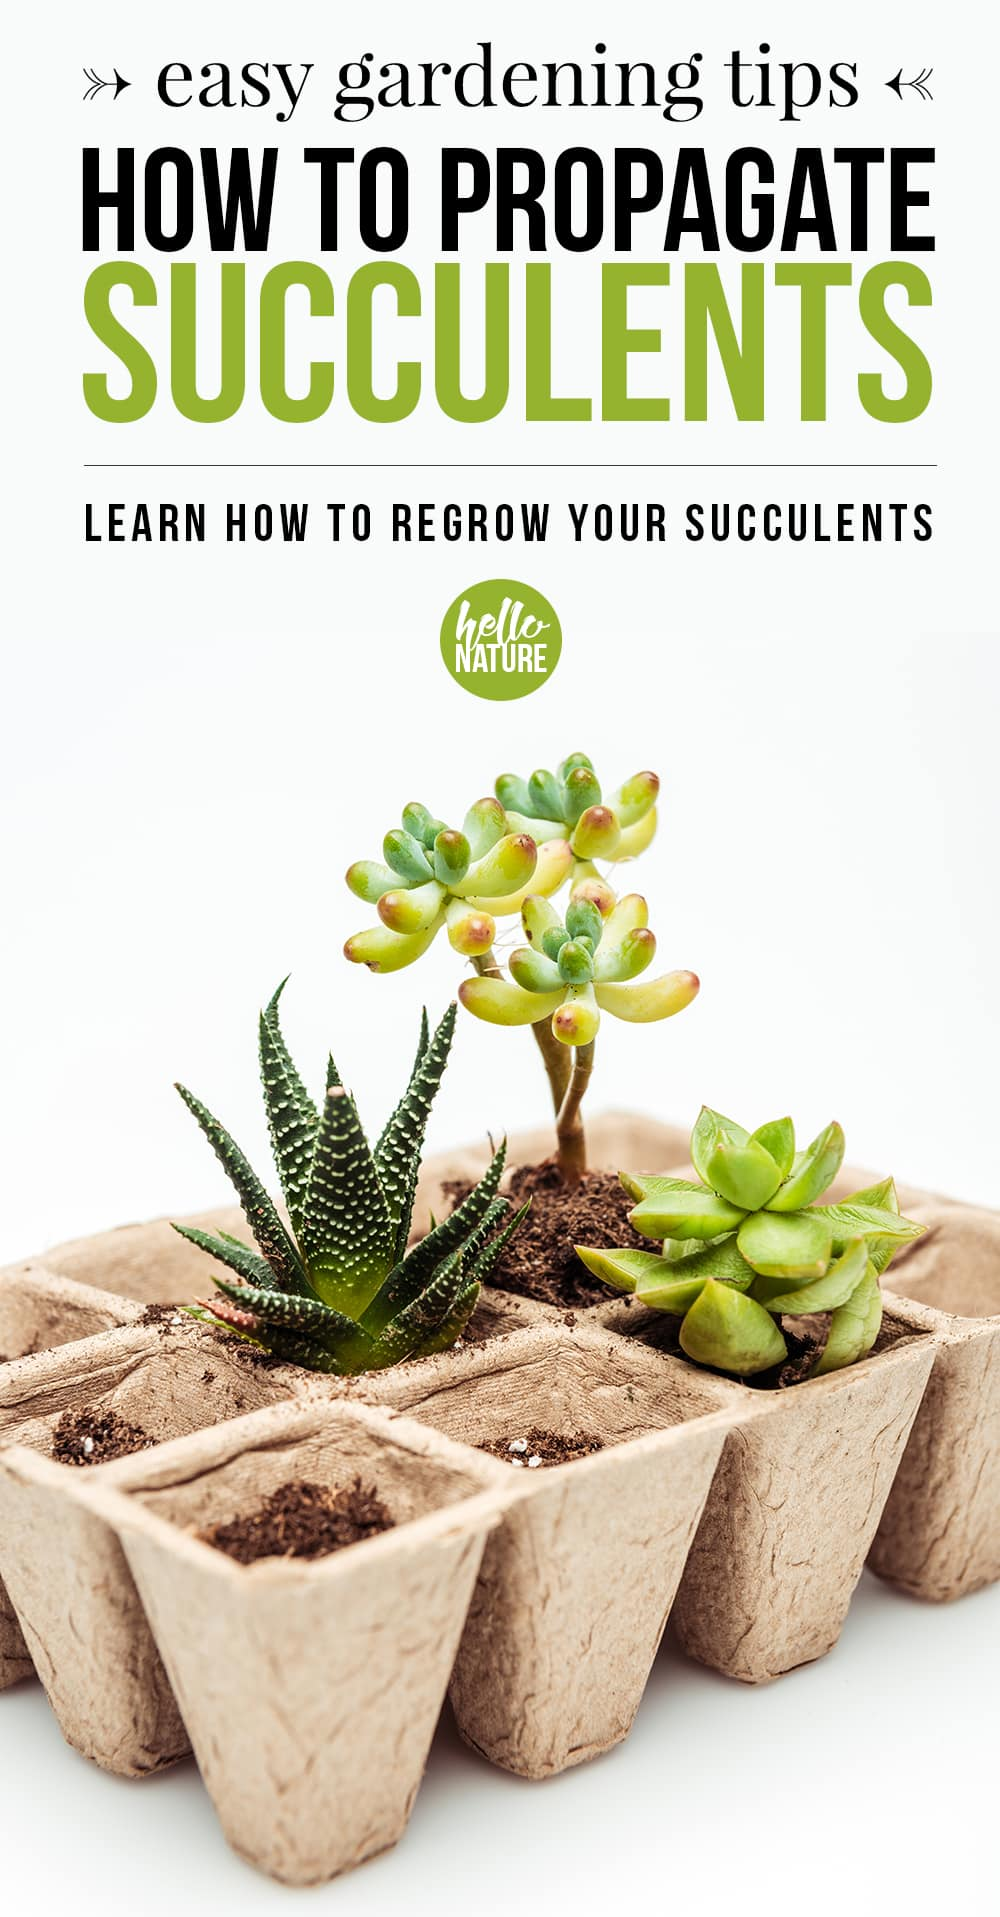 A quick and easy guide on how to propagate succulents. It'll help even those with the blackest of thumbs regrow succulents from the leaves of other succulents. You'll be surrounded in these cute little plants in no time! #Succulents #SucculentCare #Gardening